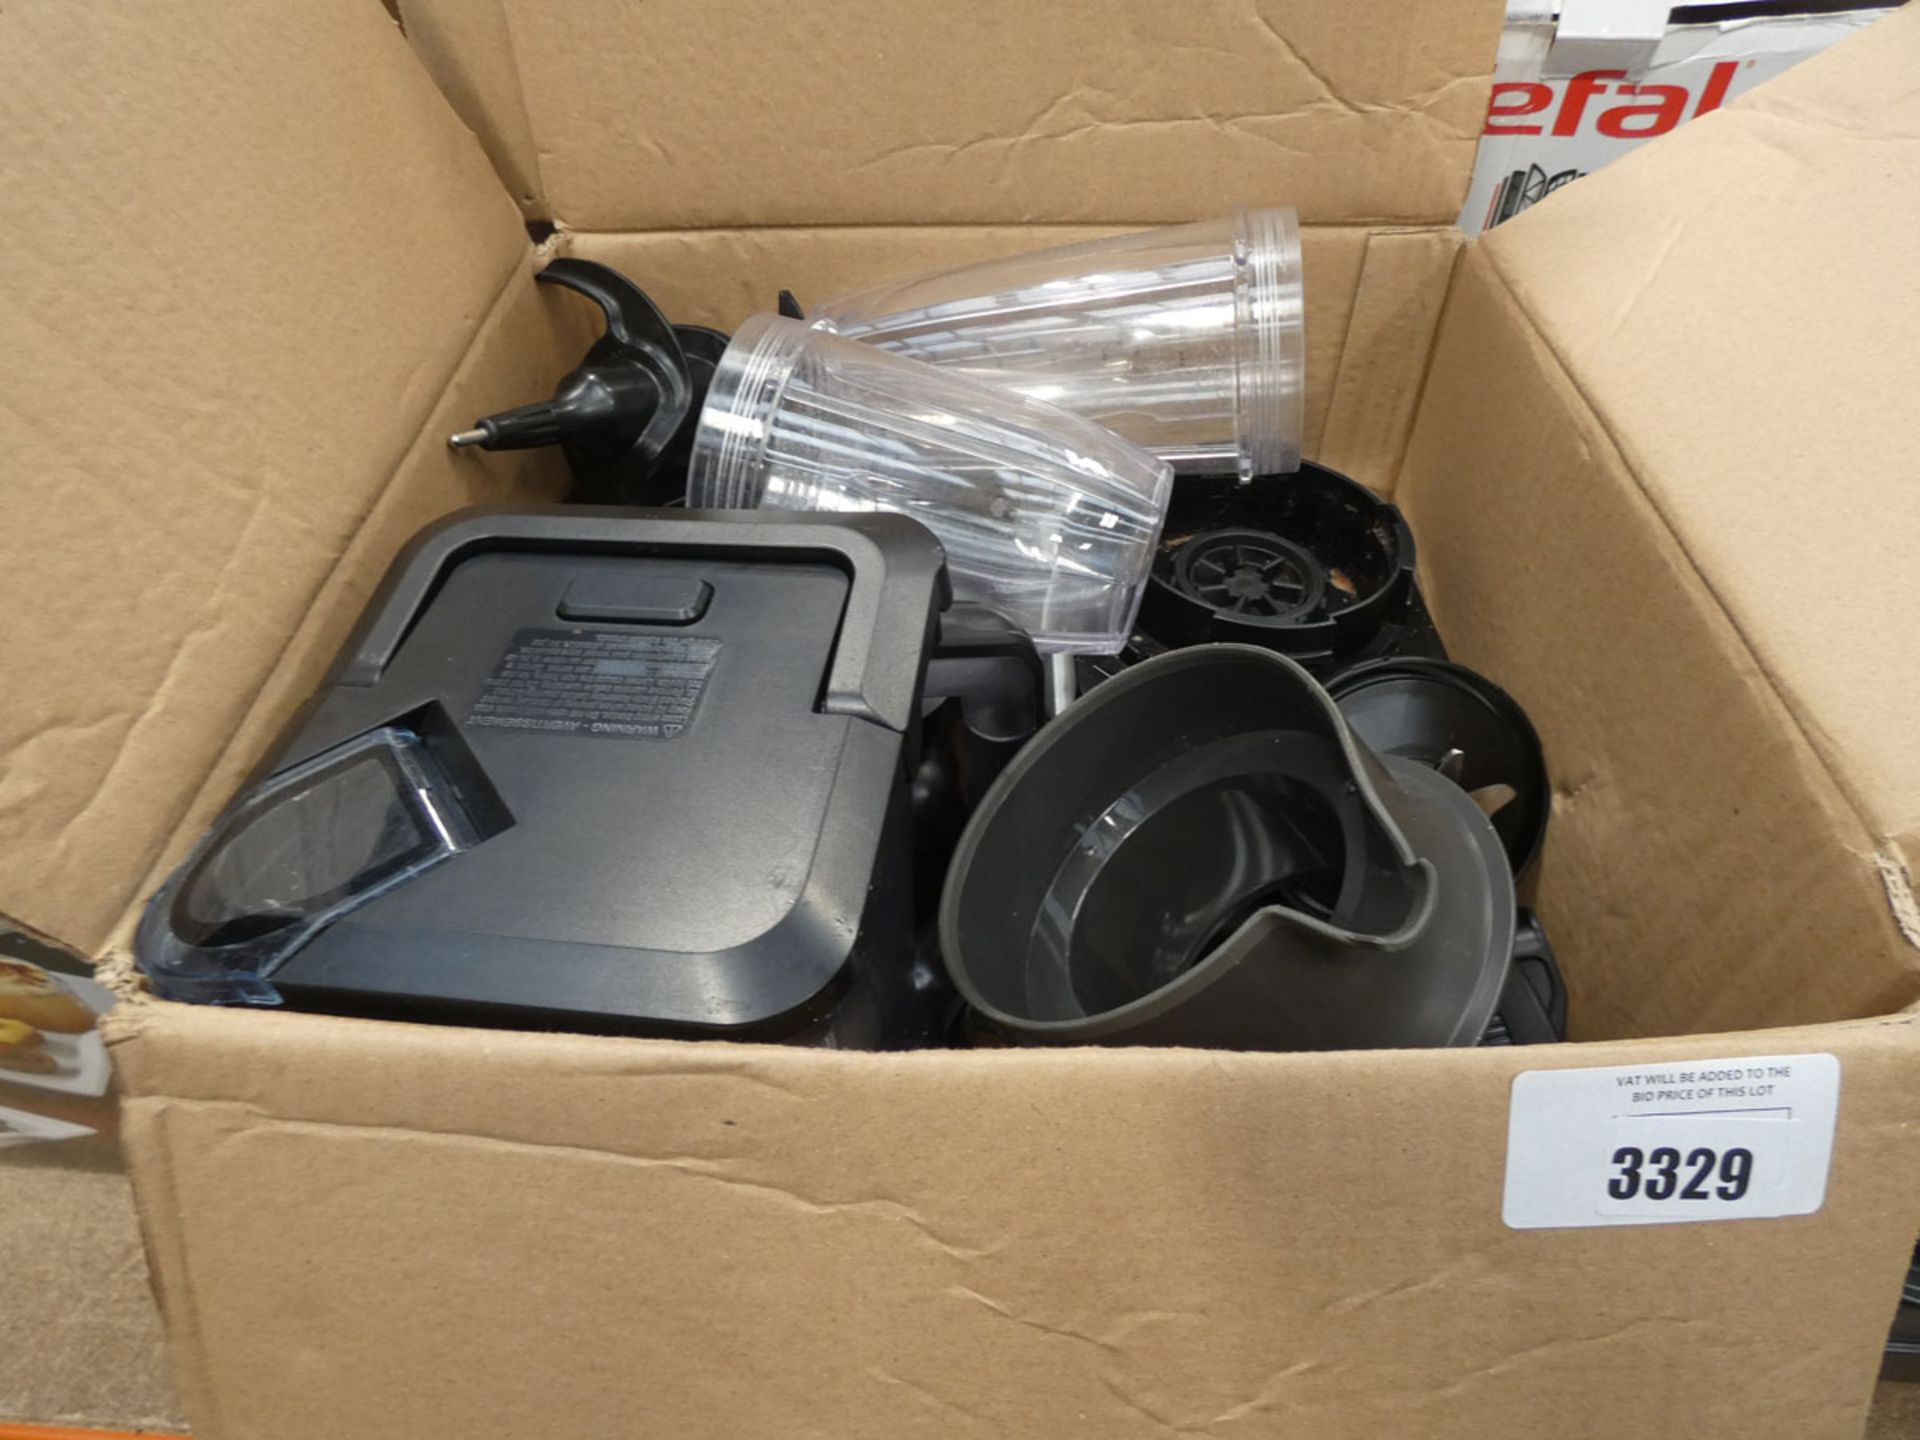 (TN91) Box containing a Ninja blender with attachments